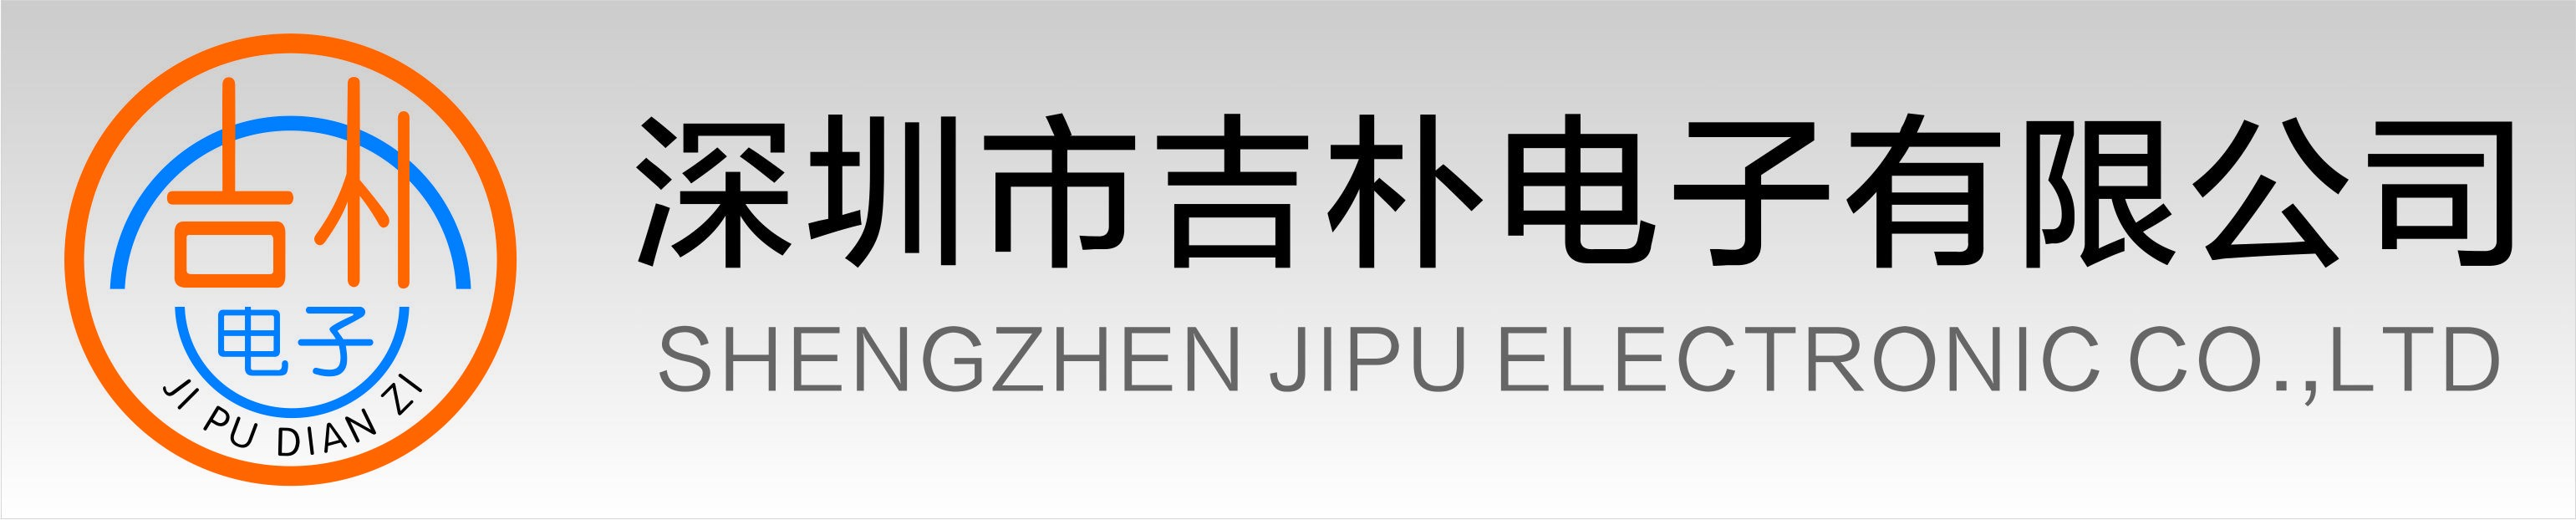 Shenzhen JIpu Electronic Co., Ltd.